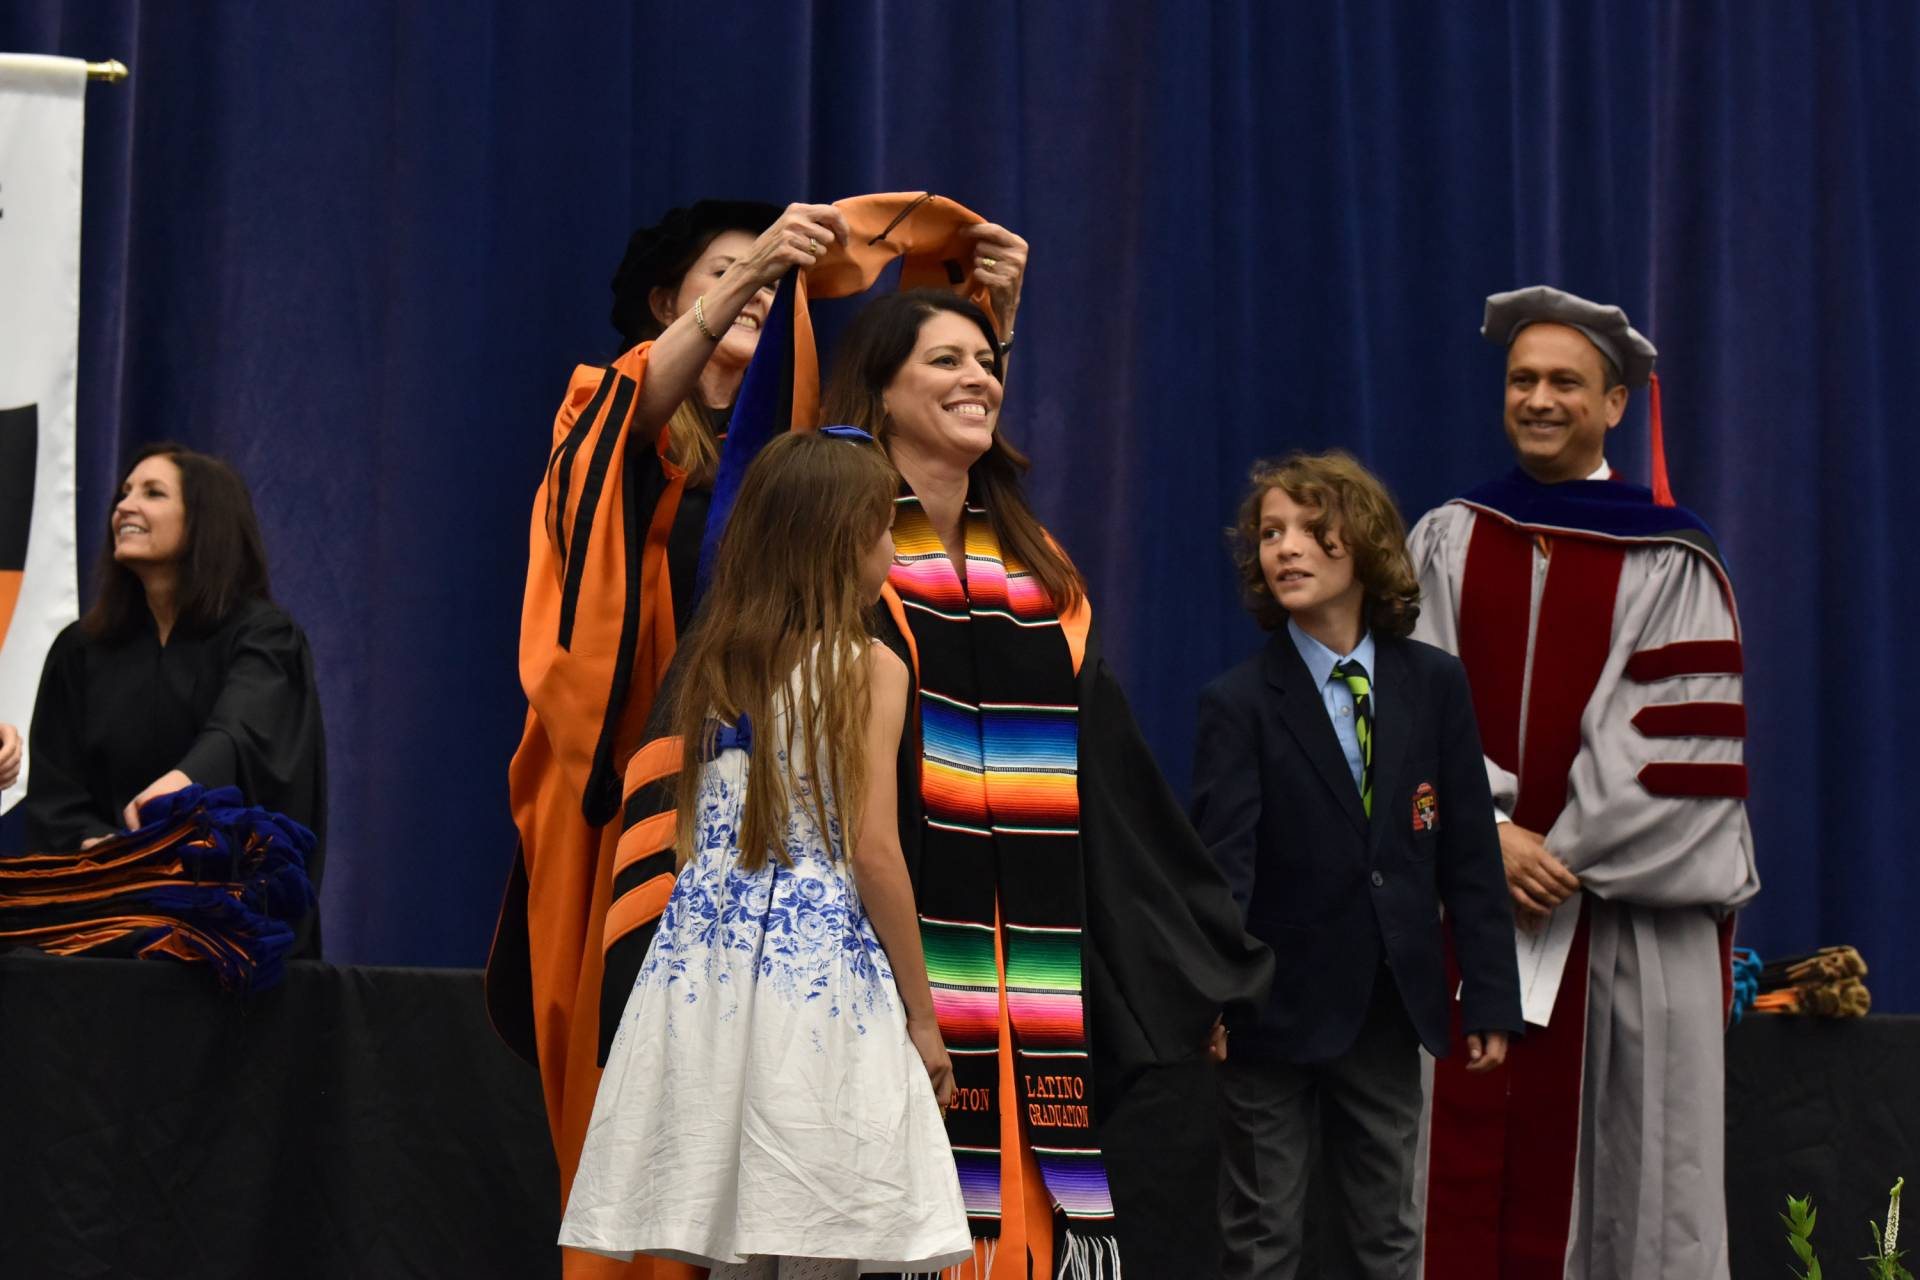 Student stands with son and daughter during hooding